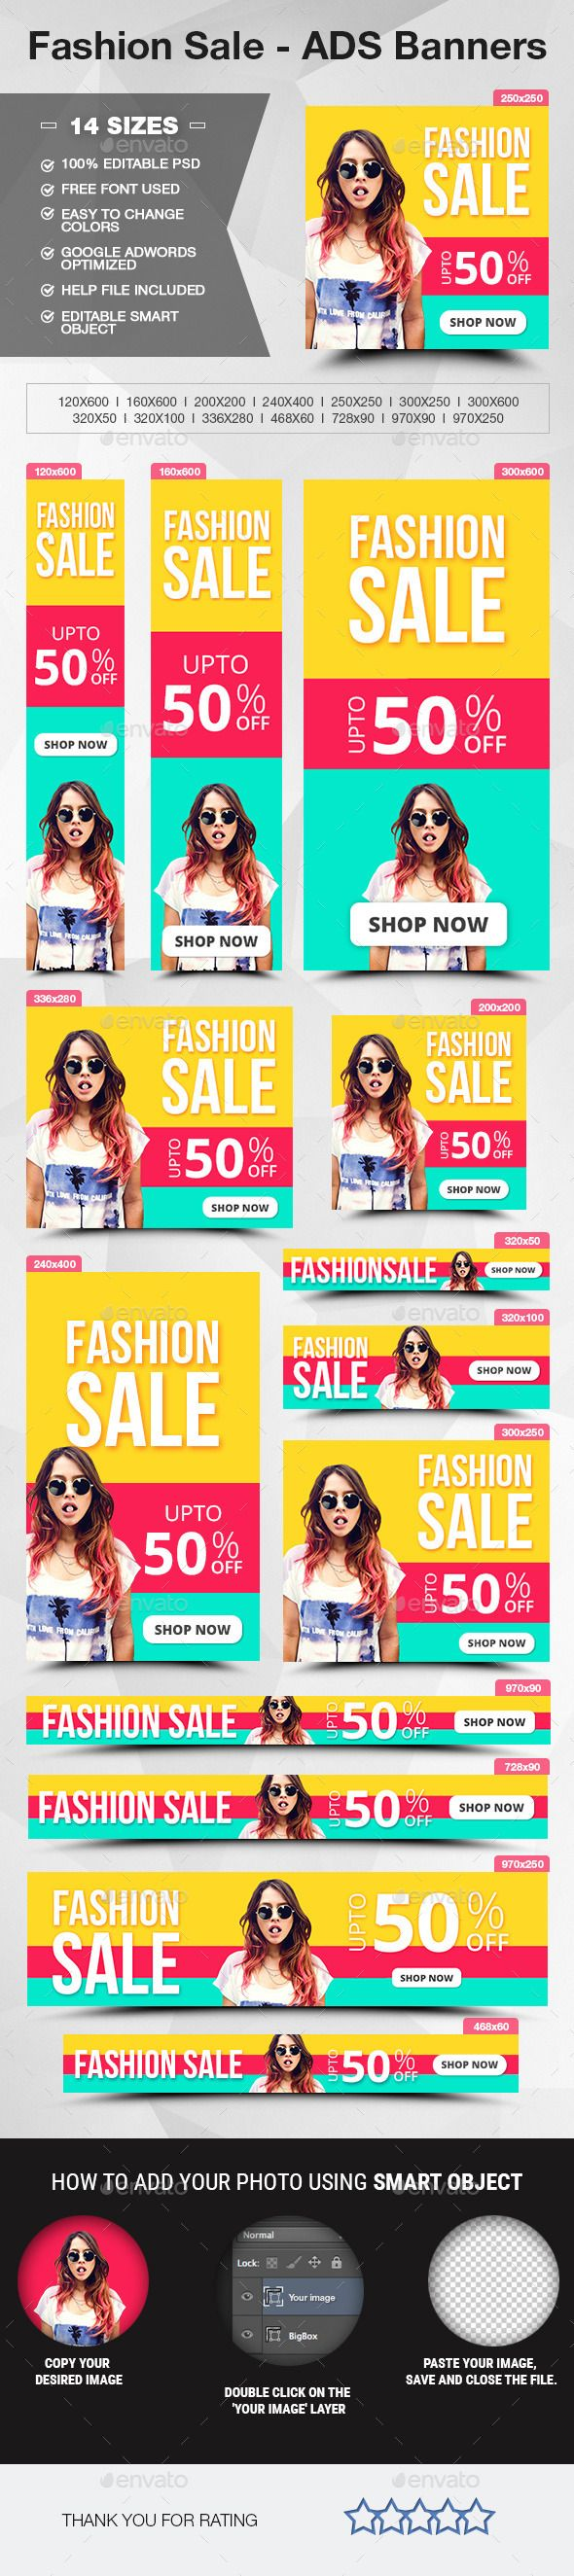 Fashion Sale - ADS Banners Template #design Download: http://graphicriver.net/item/fashion-sale-ads-banners/12217364?ref=ksioks